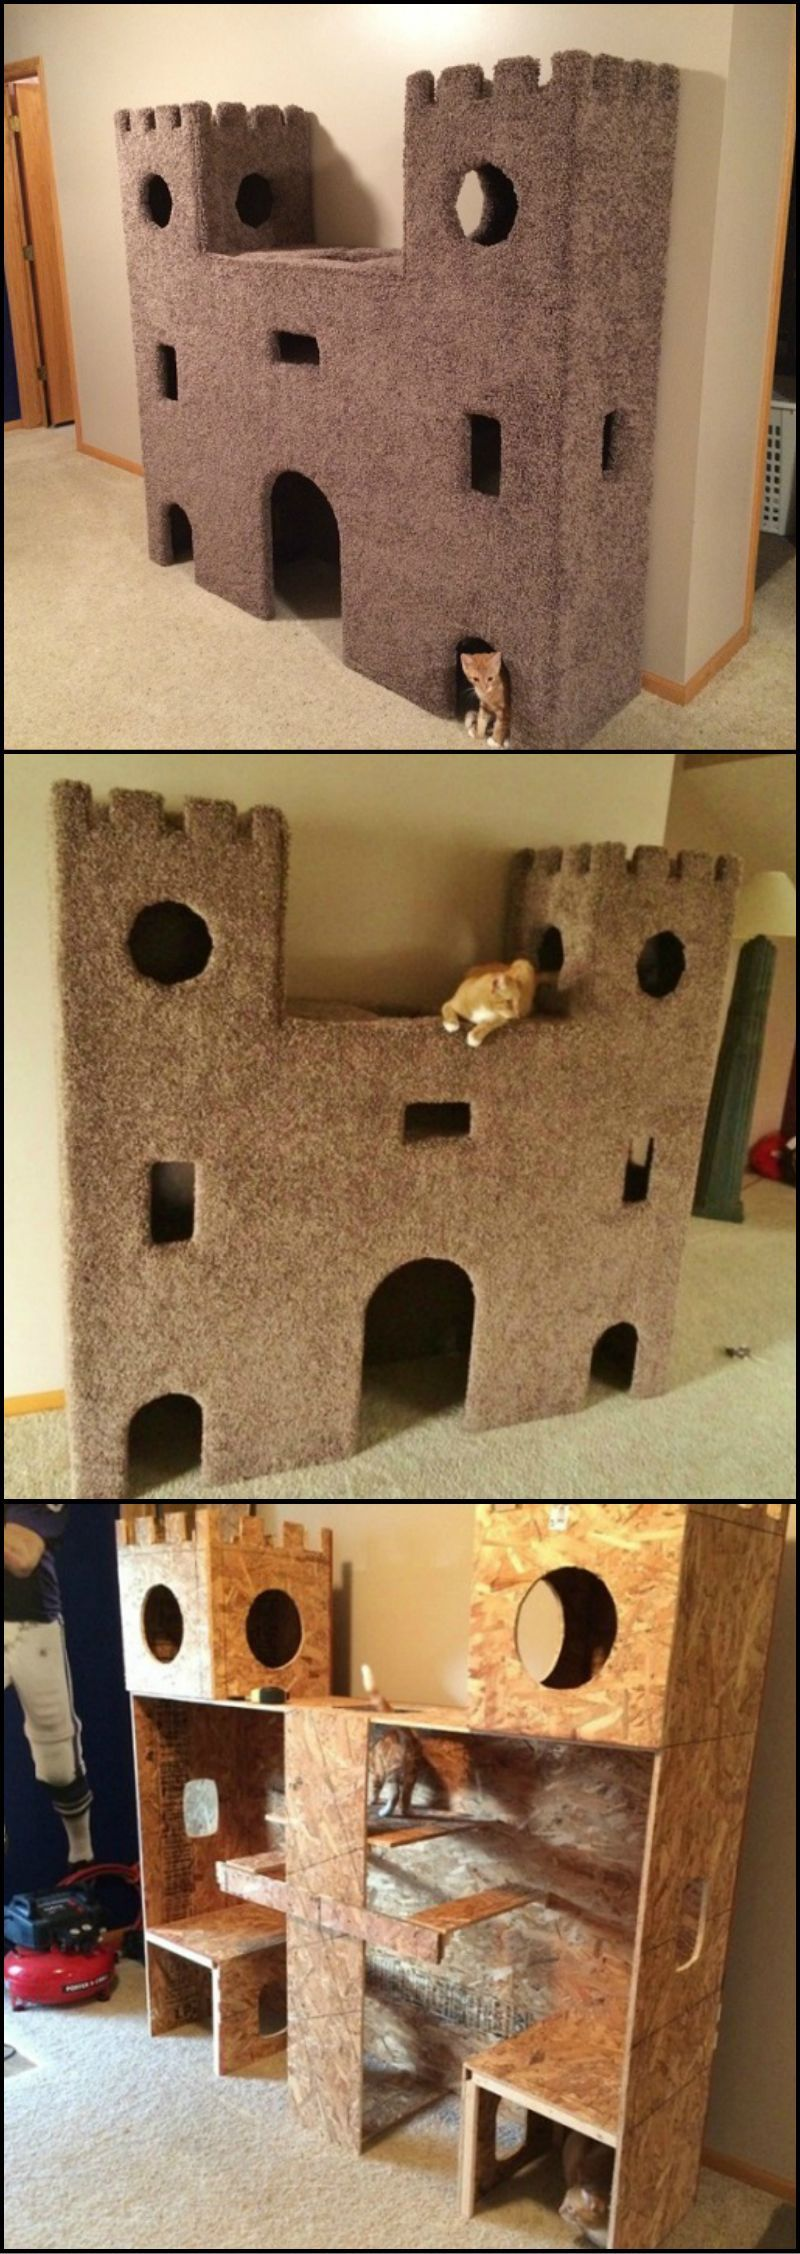 We found the ultimate cat castle this is  great idea to keep our indoor also carterita walker carwalke on pinterest rh